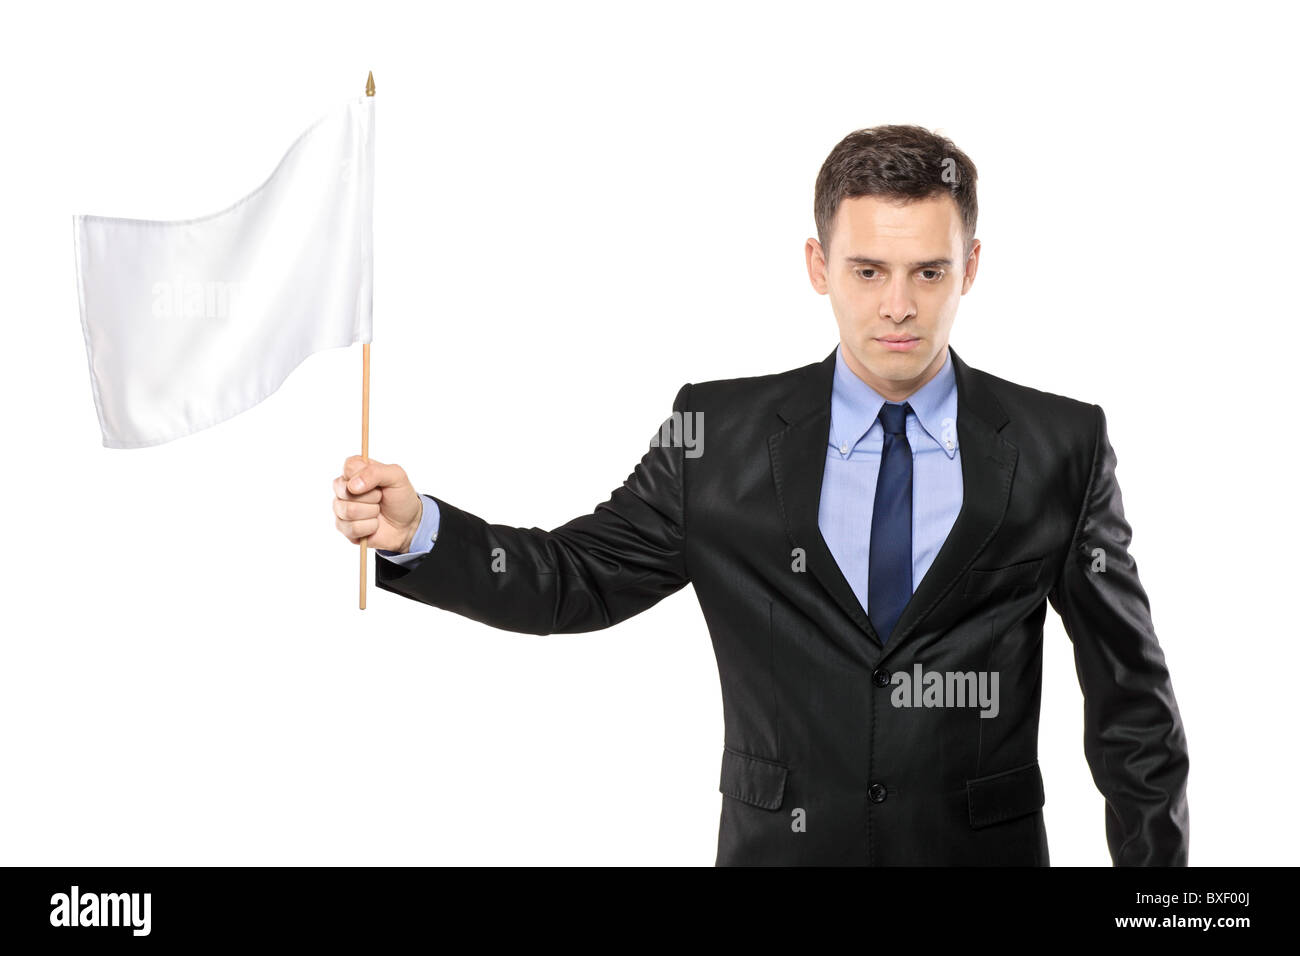 A sad man holding a white flag, gesturing defeat - Stock Image